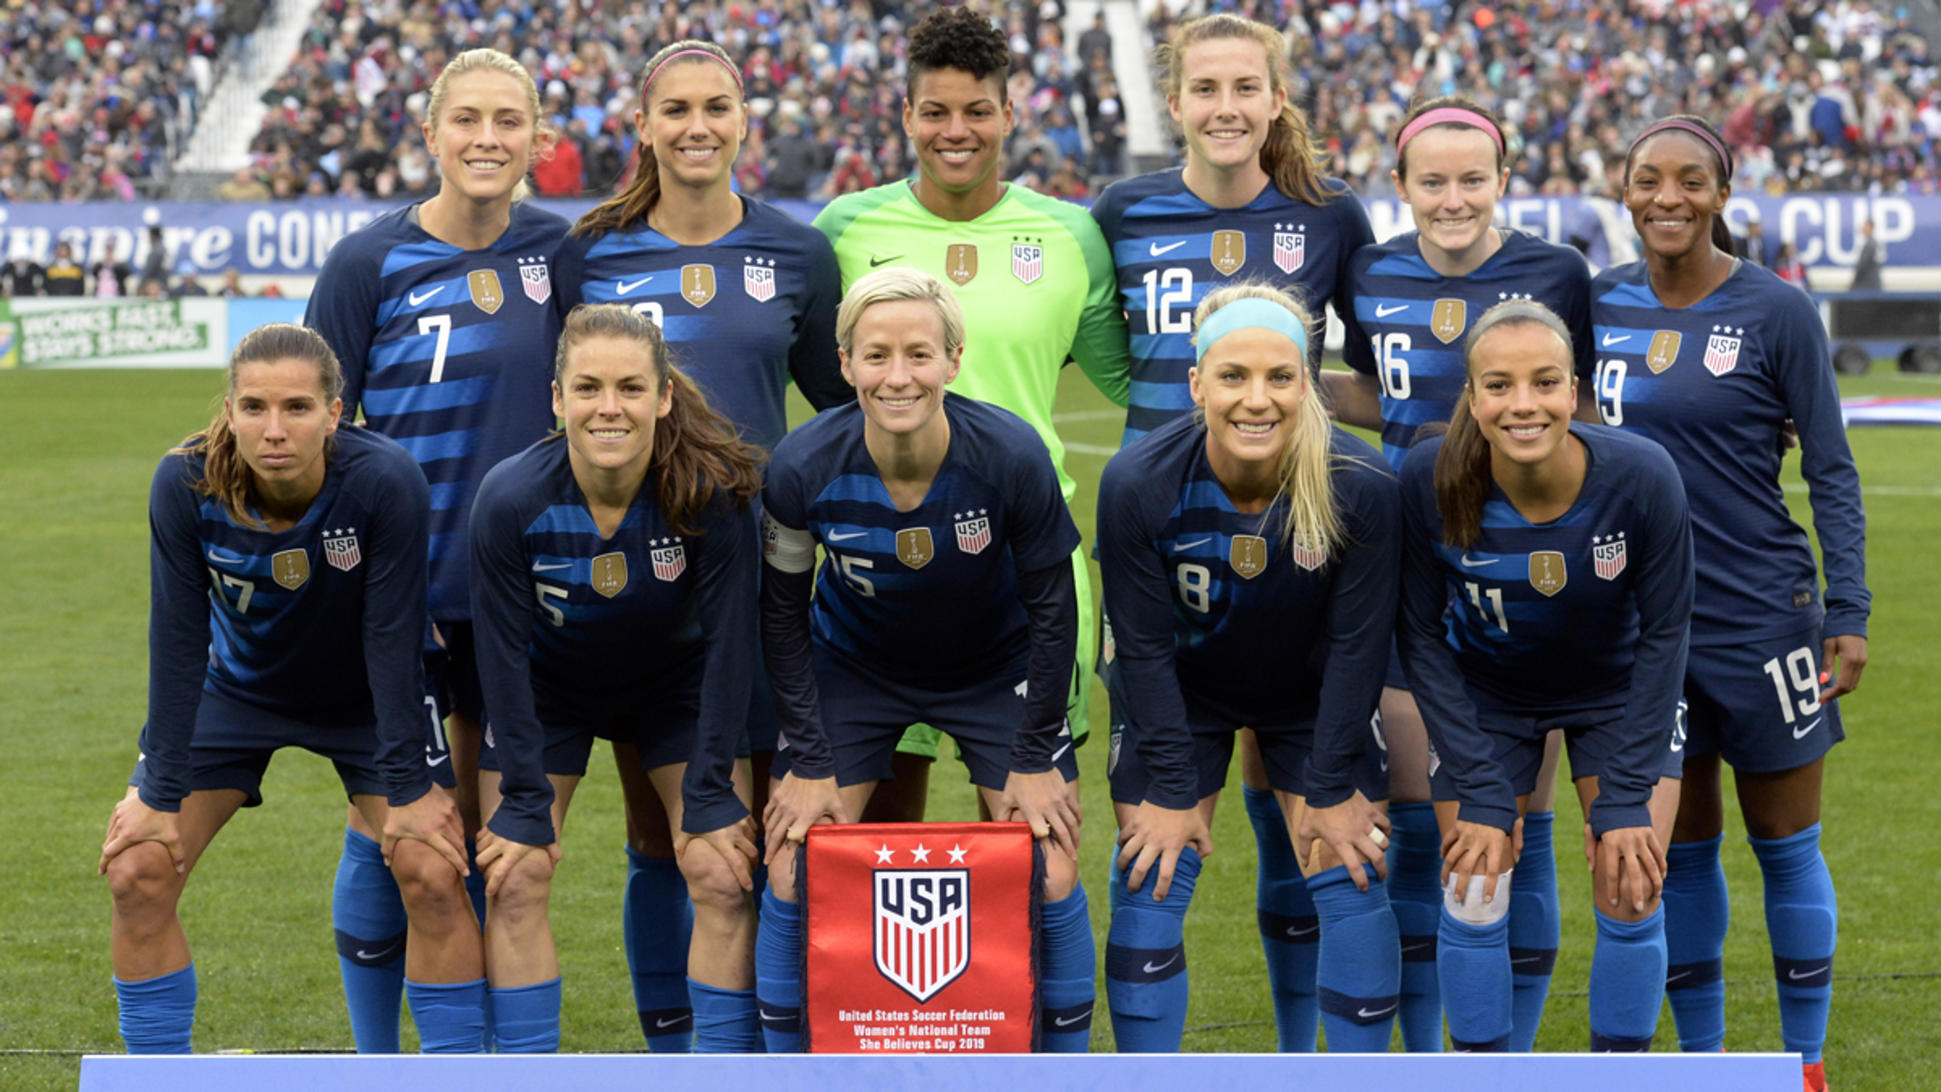 U.S. Women's soccer team sues for equal pay | Power Line